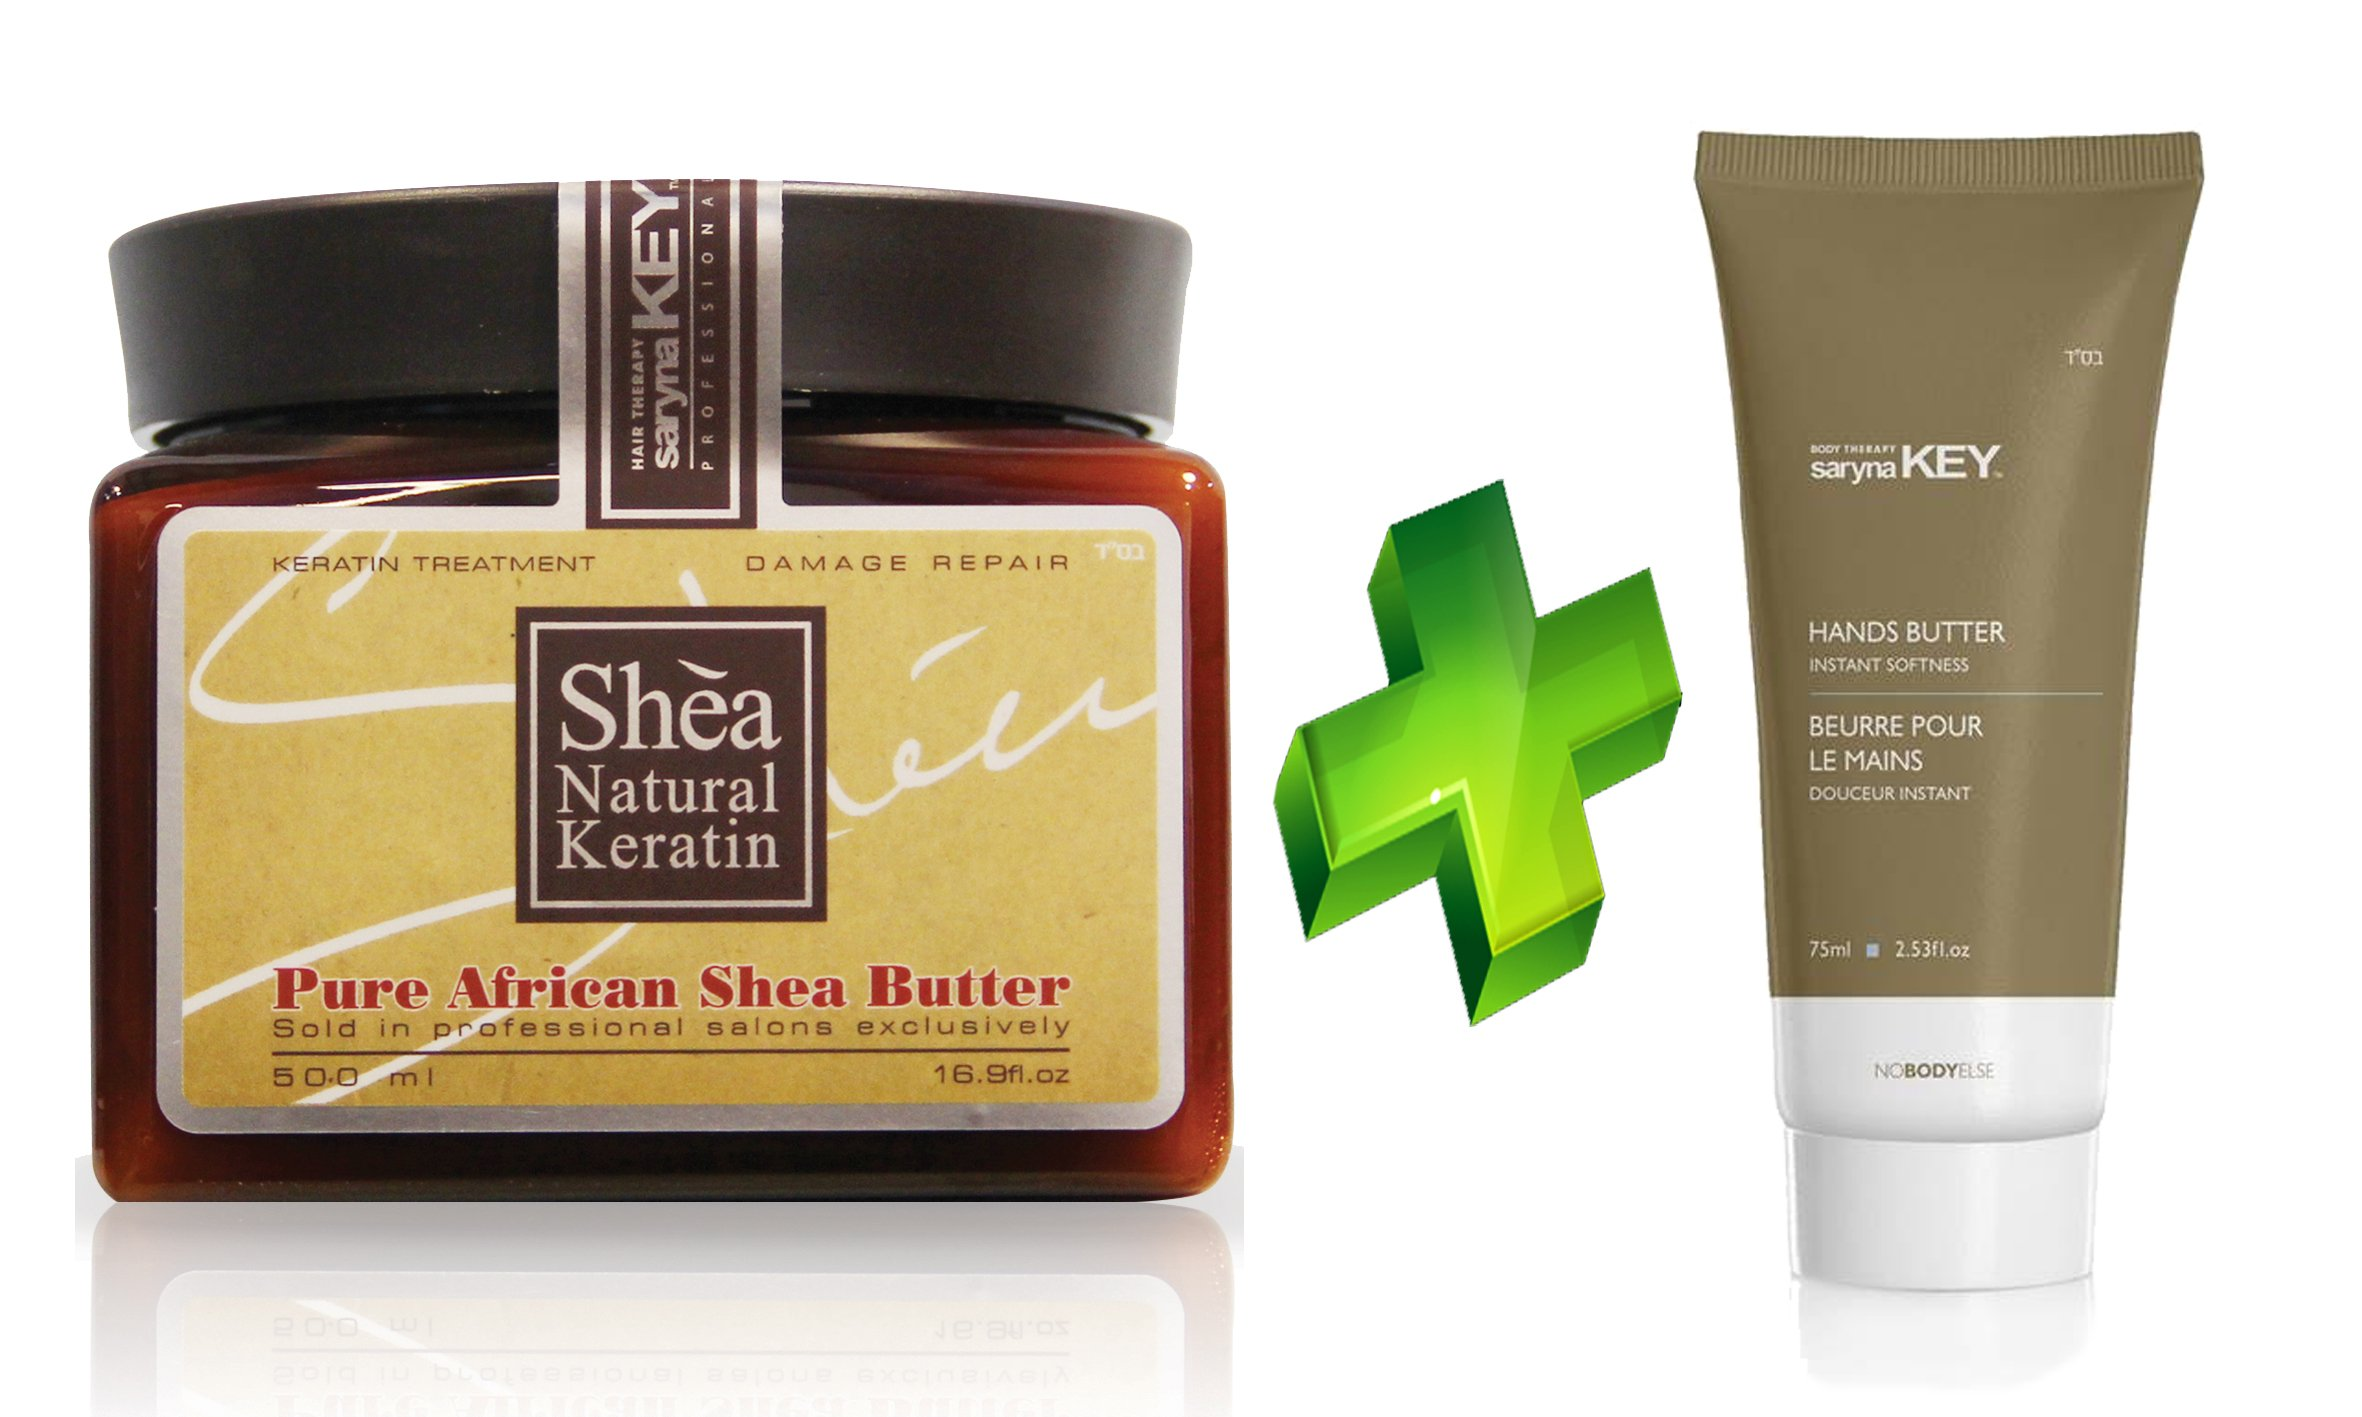 Saryna Key Damage Repair Pure African Shea Butter Mask, 16.9 Ounce + hand cream 2.5 Ounce - KIT